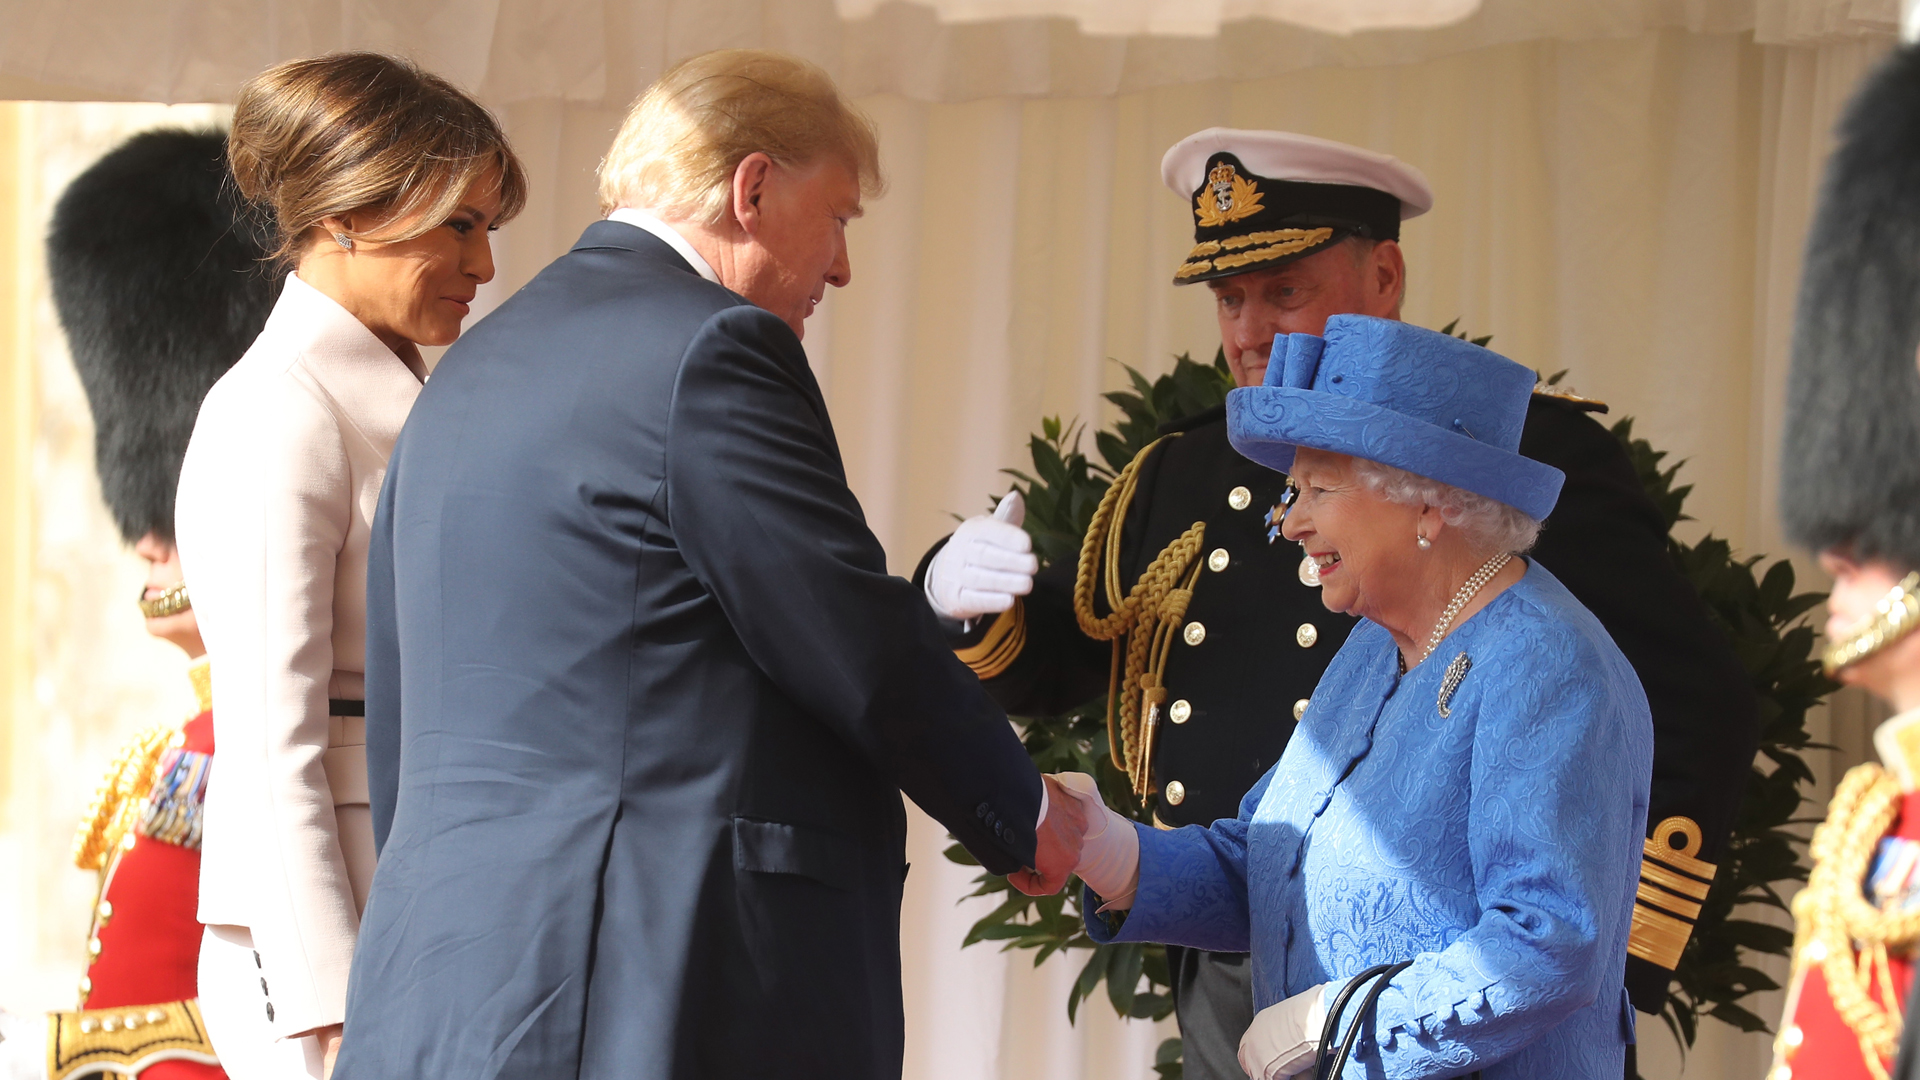 Britain's Queen Elizabeth II shakes hands with Donald Trump as he and US First Lady Melania Trump arrive for a welcome ceremony at Windsor Castle on July 13, 2018. (Credit: Chris Jackson / POOL / Getty Images)